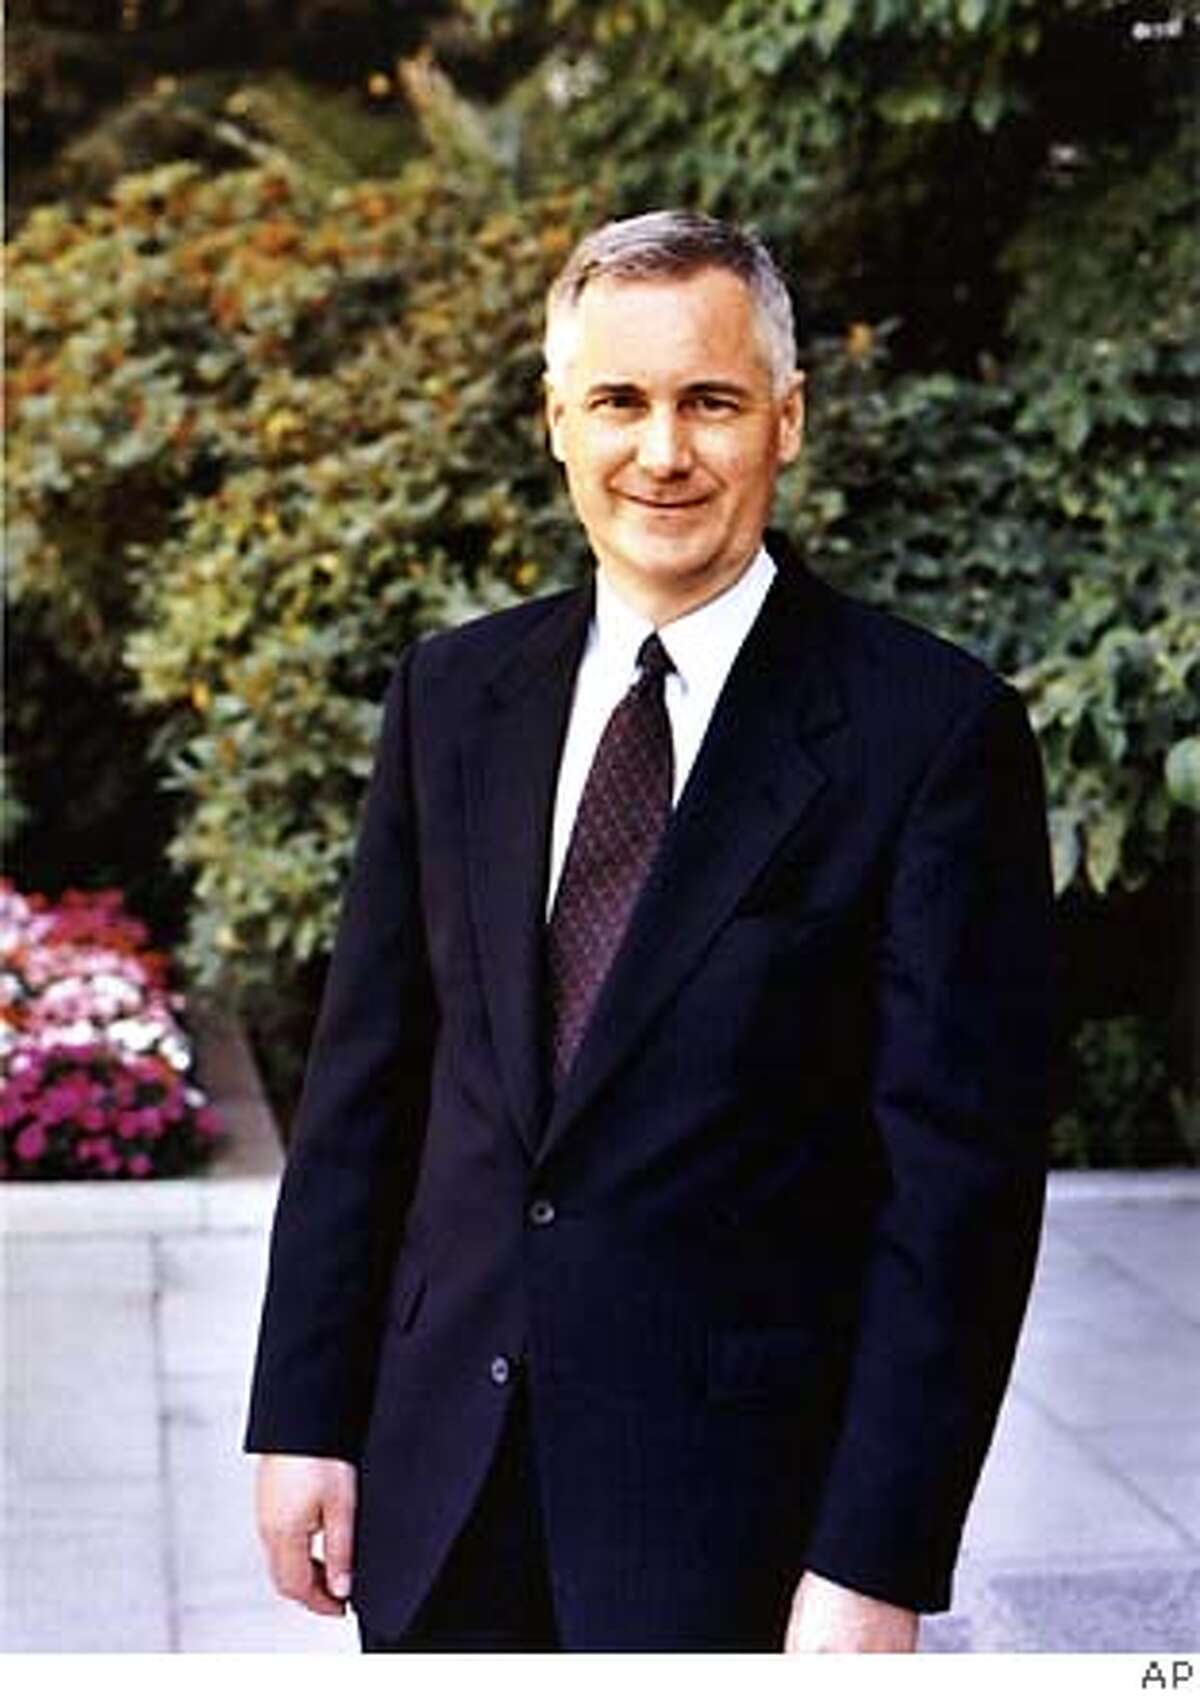 ** ADVANCE FOR USE ANYTIME ** State Sen. Tom McClintock, R-Northridge, seen in undate photo, is running unopposed for the Republican nomination for lieutenant governor in the June primary. McClintock will face the winner of the Democratic primary, either state Sen. Jackie Speier, D-Daly City, state Sen. Liz Figueroa, of Sunol, or Insurance Commissioner John Garamendi. (AP Photo/McClintock for Lieutenant Governor) ** ** Ran on: 05-26-2006 Ran on: 05-28-2006 Ran on: 06-07-2006 Ran on: 10-18-2006 ALSO Ran on: 10-24-2006 Ran on: 10-25-2006 John Garamendi ALSO Ran on: 10-25-2006 ALSO Ran on: 10-29-2006 ALSO Ran on: 11-04-2006 John Garamendi John Garamendi Ran on: 11-08-2006 Democrat John Garamendi (right) chats with Rep. Doris Matsui, D-Sacramento, in Sacramento. Ran on: 11-08-2006 Democrat John Garamendi (right) chats with Rep. Doris Matsui, D-Sacramento, in Sacramento. ADVANCE FOR USE ANYTIME, UNDATED PHOTO PROVIDED BY MCCLINTOCK FOR LIEUTENANT GOVERNOR,